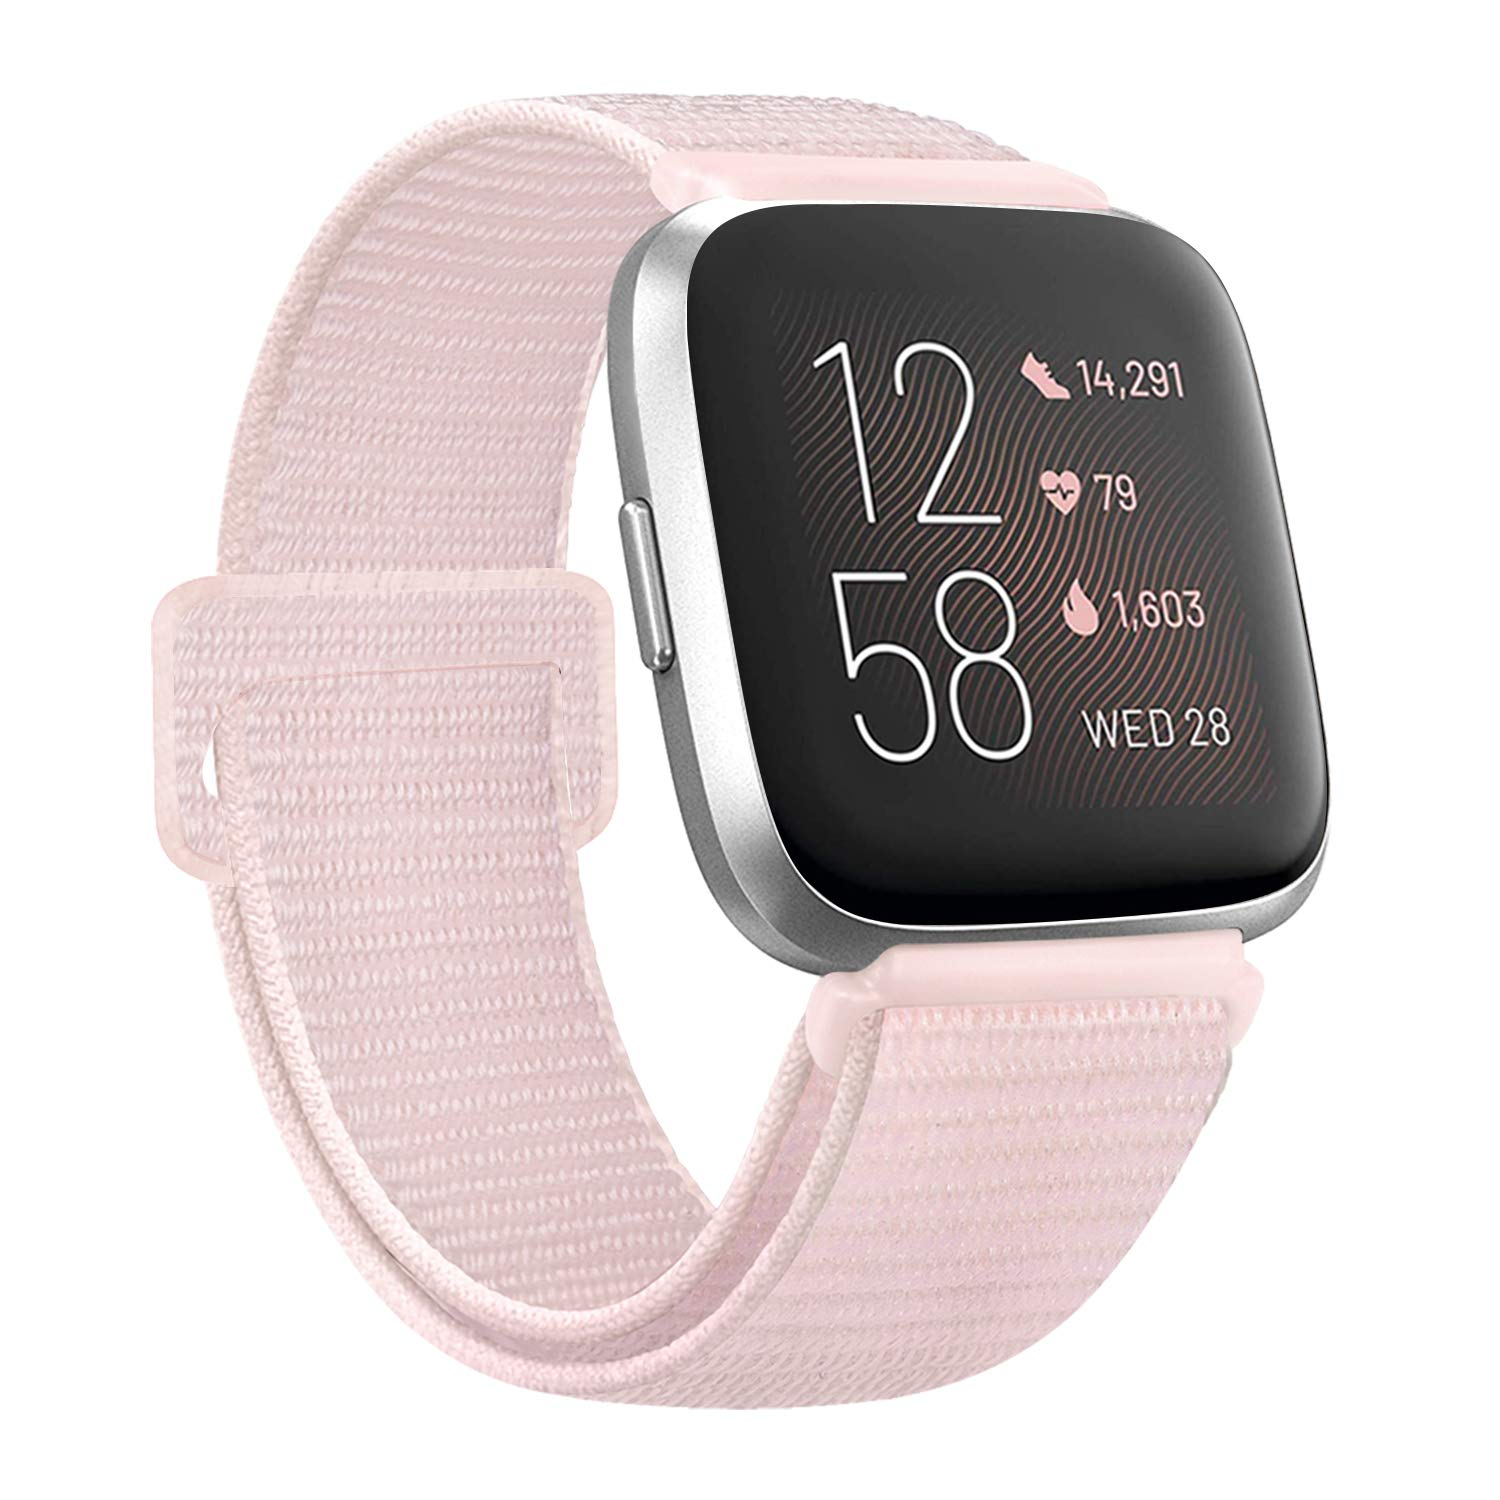 AK Nylon Bands Compatible with Fitbit Versa 2/ Versa Lite/Versa SE, Soft Replacement Wristband Sport Loop with Fastener Adjustable Closure for Women Men